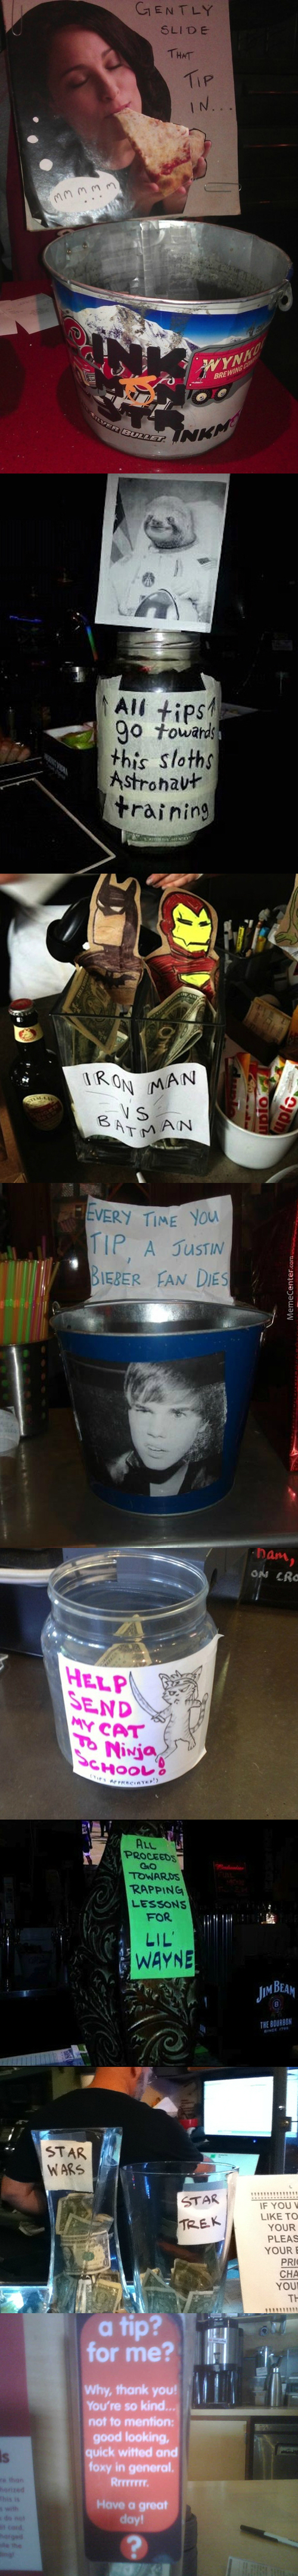 Need A Tip?